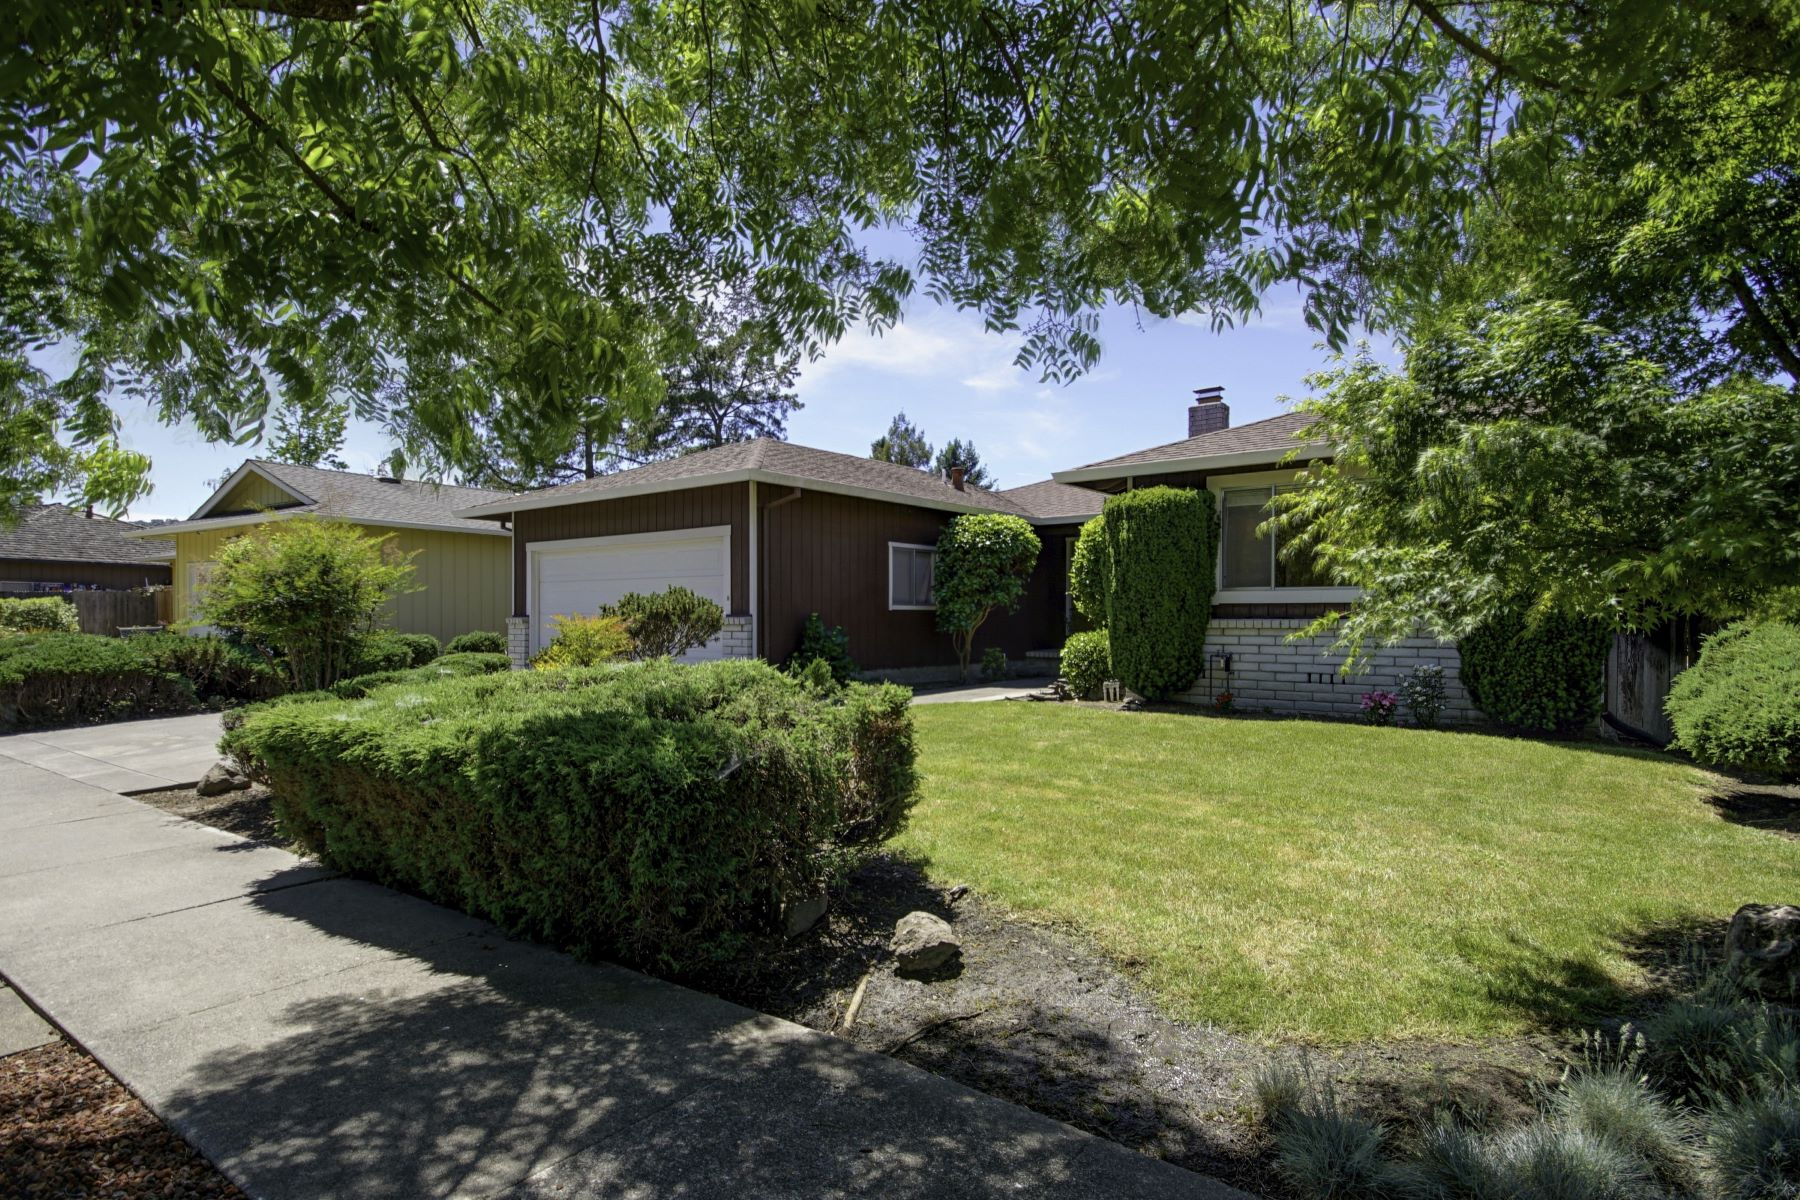 Single Family Home for Sale at Bennet Valley Single Story Home 2412 Horseshoe Drive Santa Rosa, California, 95405 United States